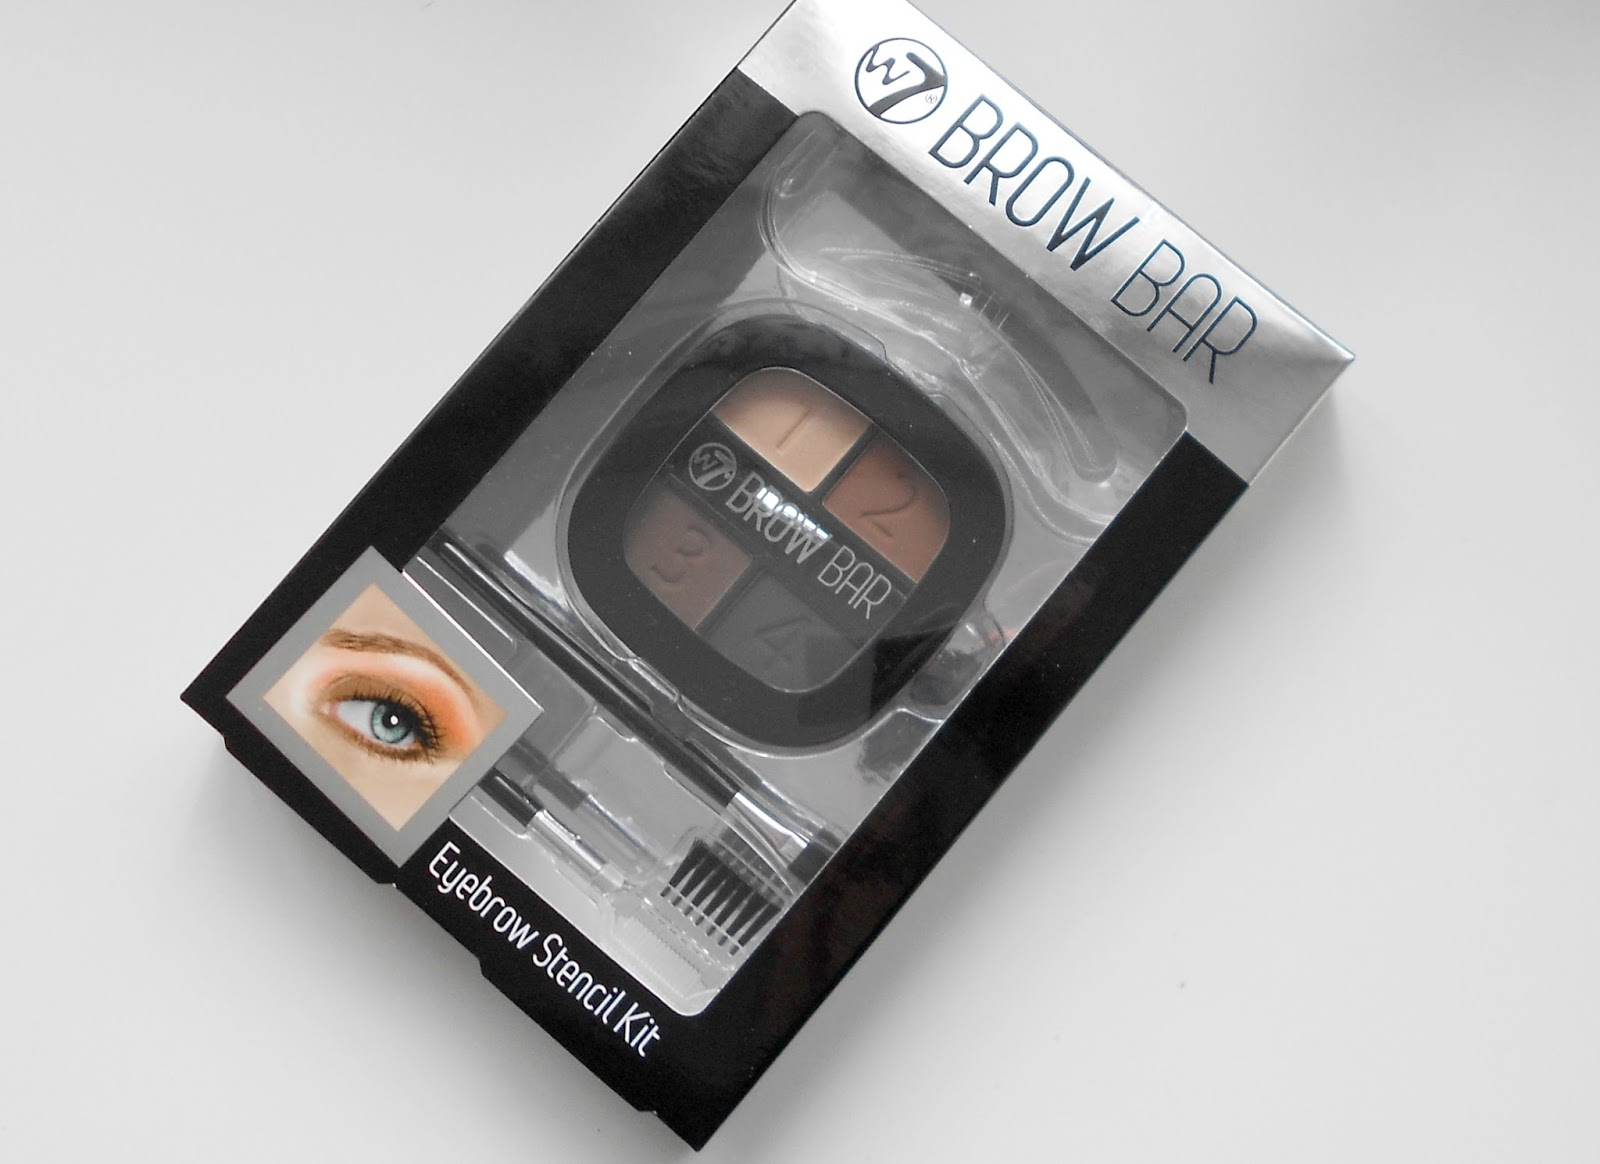 w7 brow bar eyebrow kit review swatches